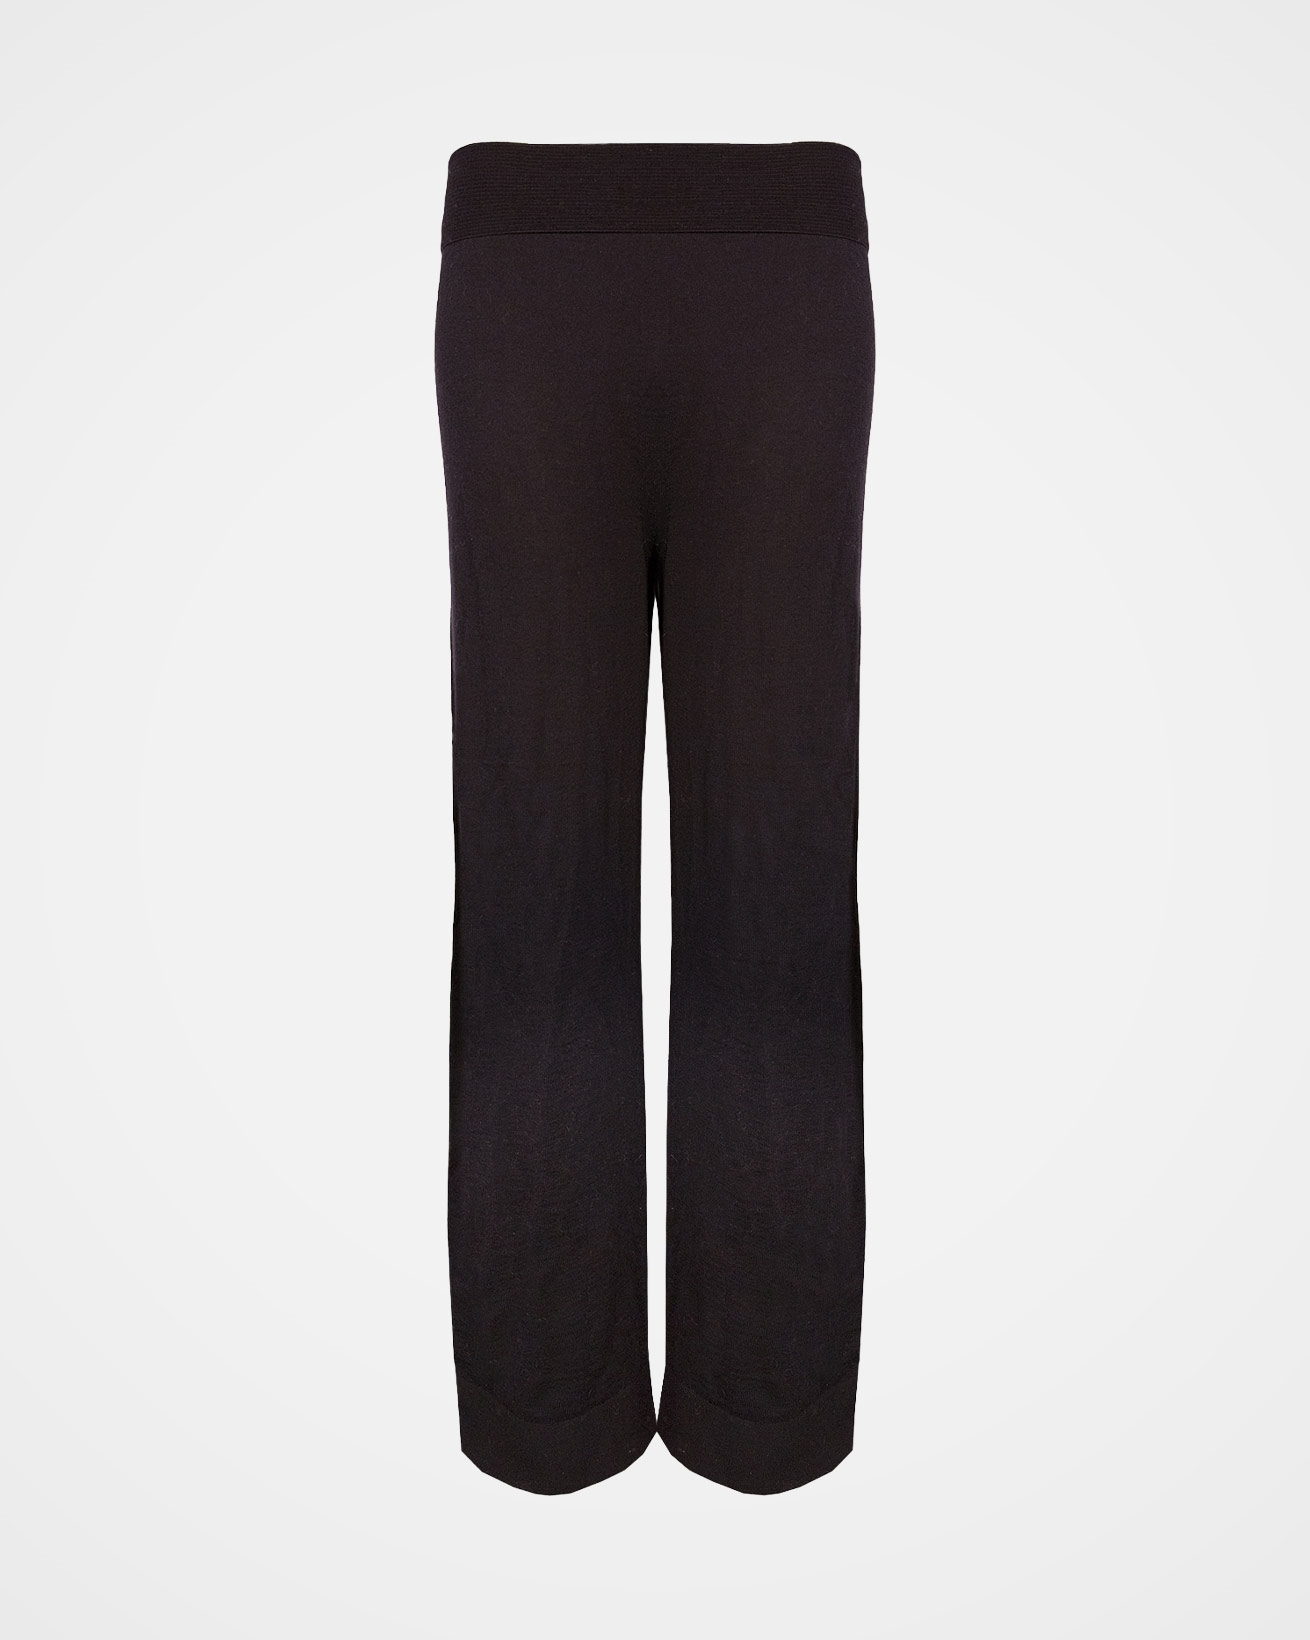 7432_wide-leg-merino-lounge-pants_navy_front.jpg